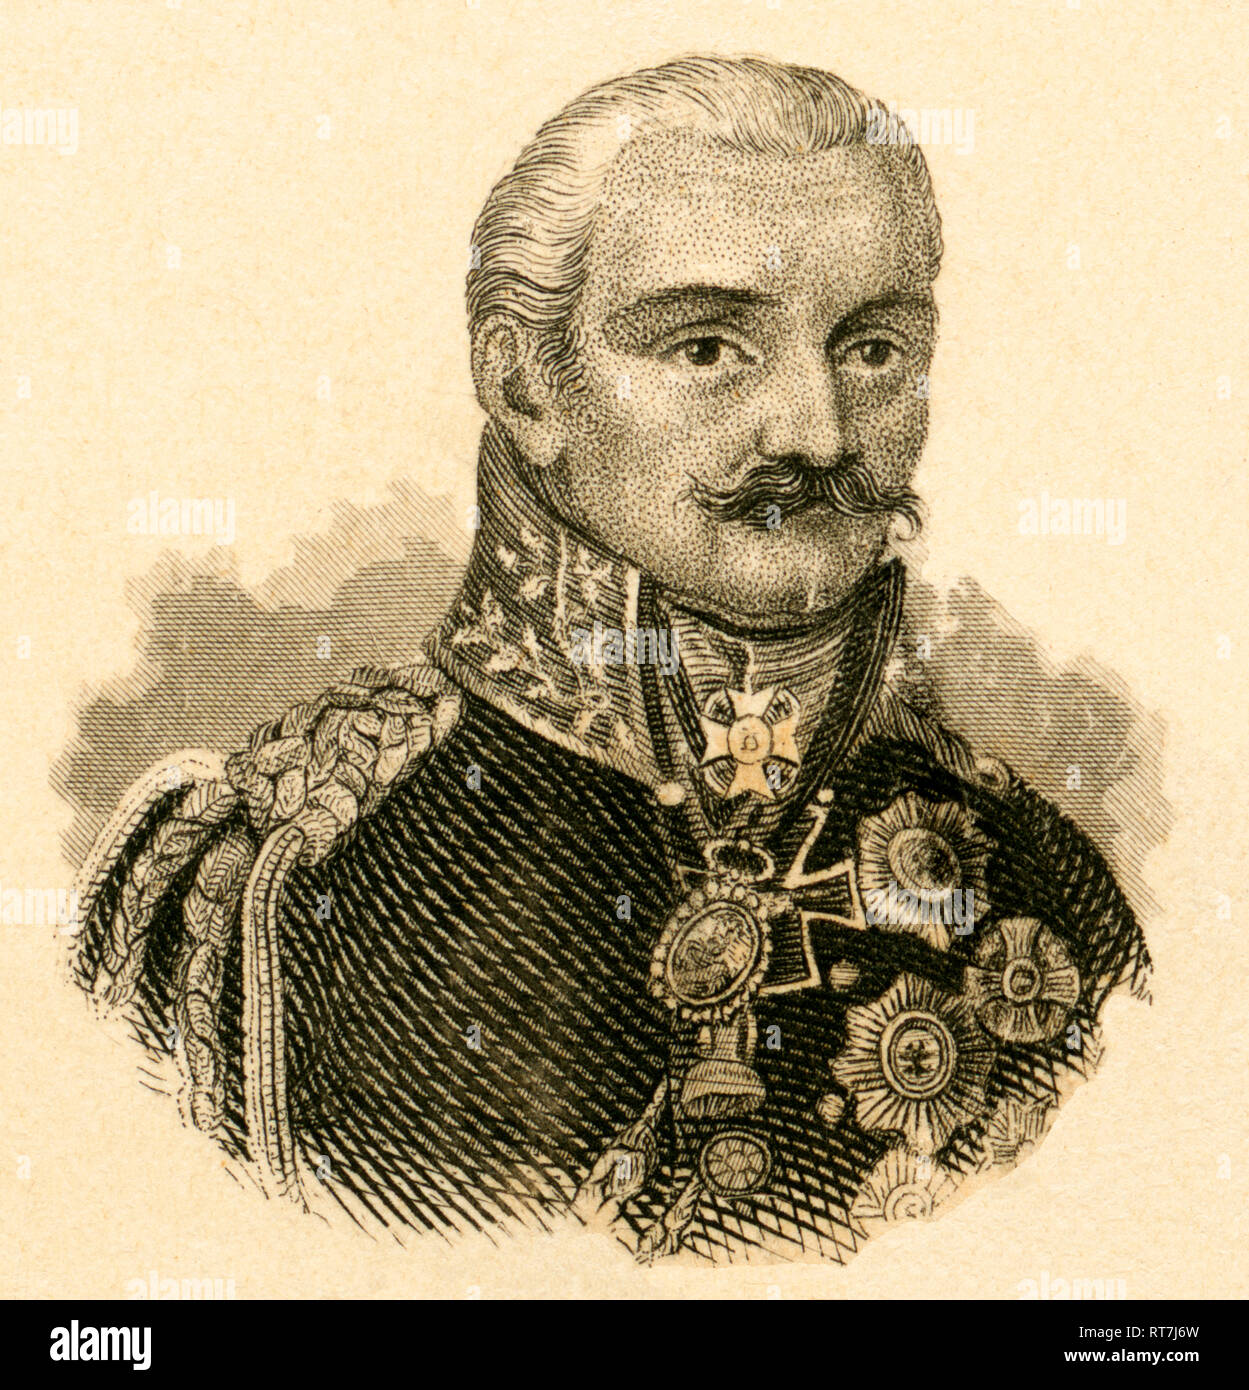 Gebhard Leberecht von Blücher, Prussian general field marshall, steel engraving by Carl Mayer / Nürnberg, published by C. A. Hartleben, Pesth, about 1850., Artist's Copyright has not to be cleared - Stock Image